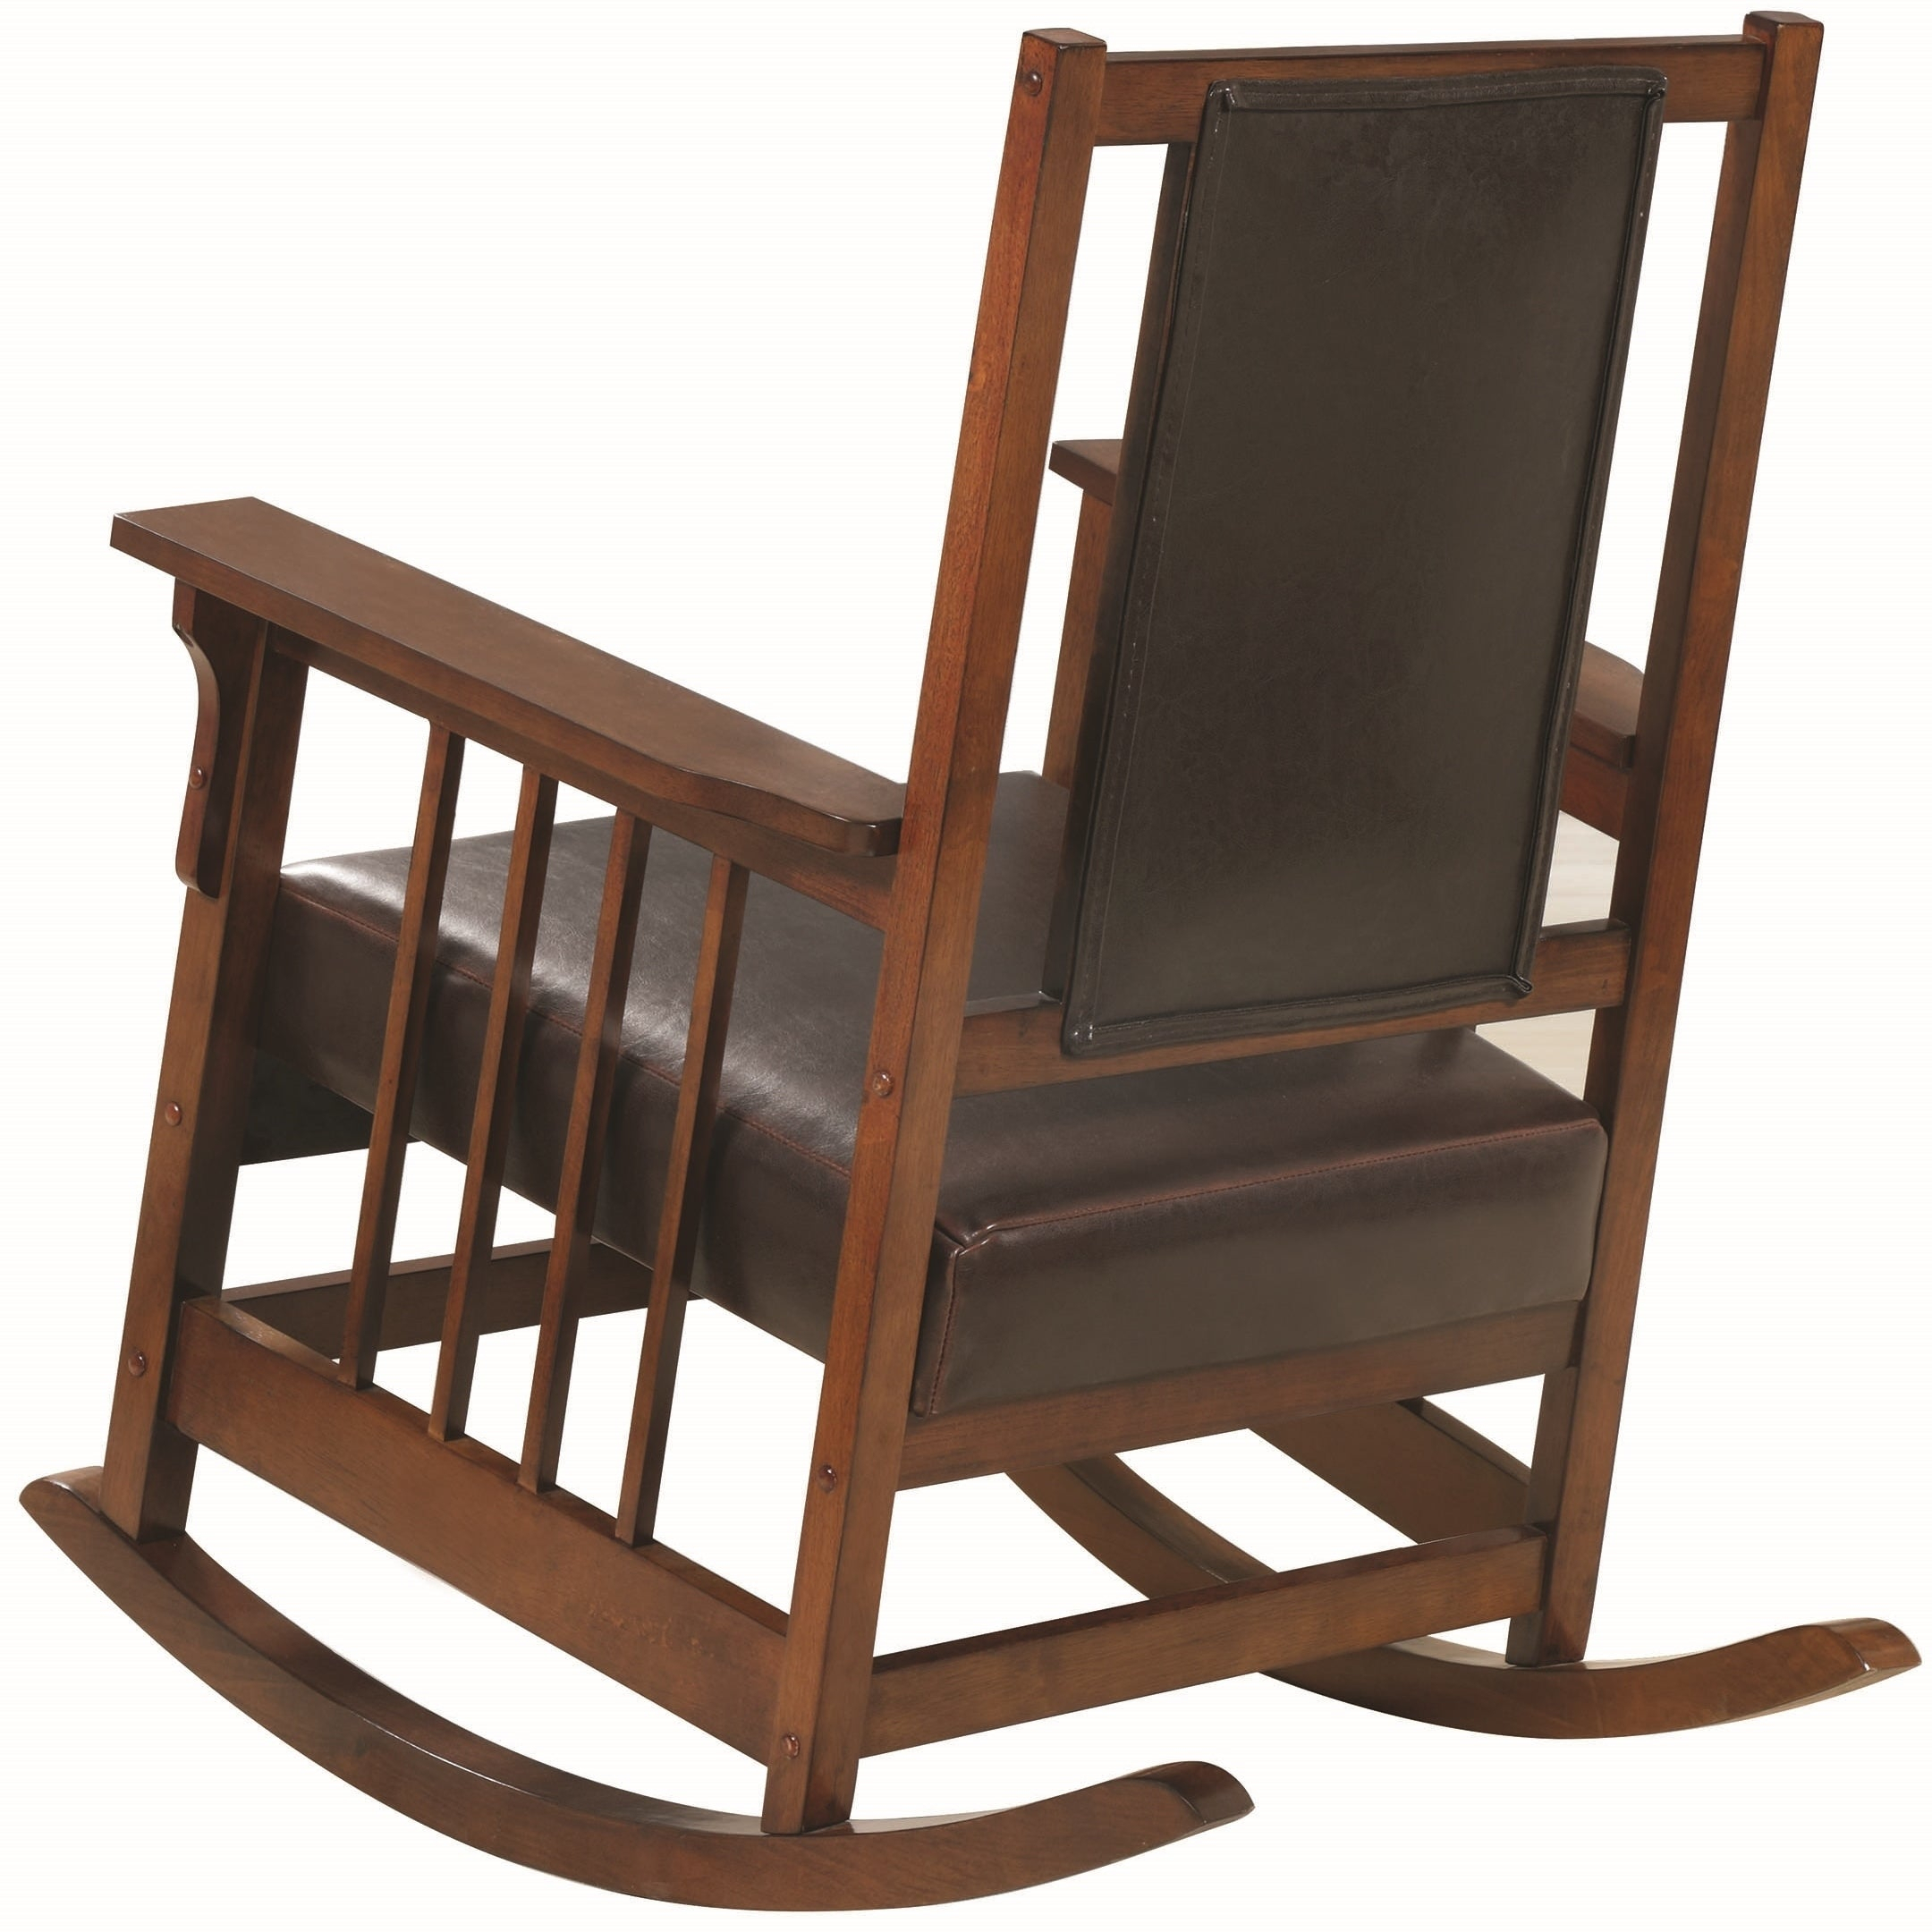 Mission Design Wood Rocking Chair With Brown Leather Seat Throughout Poppy Mission Espresso Rocking Chairs (#10 of 20)